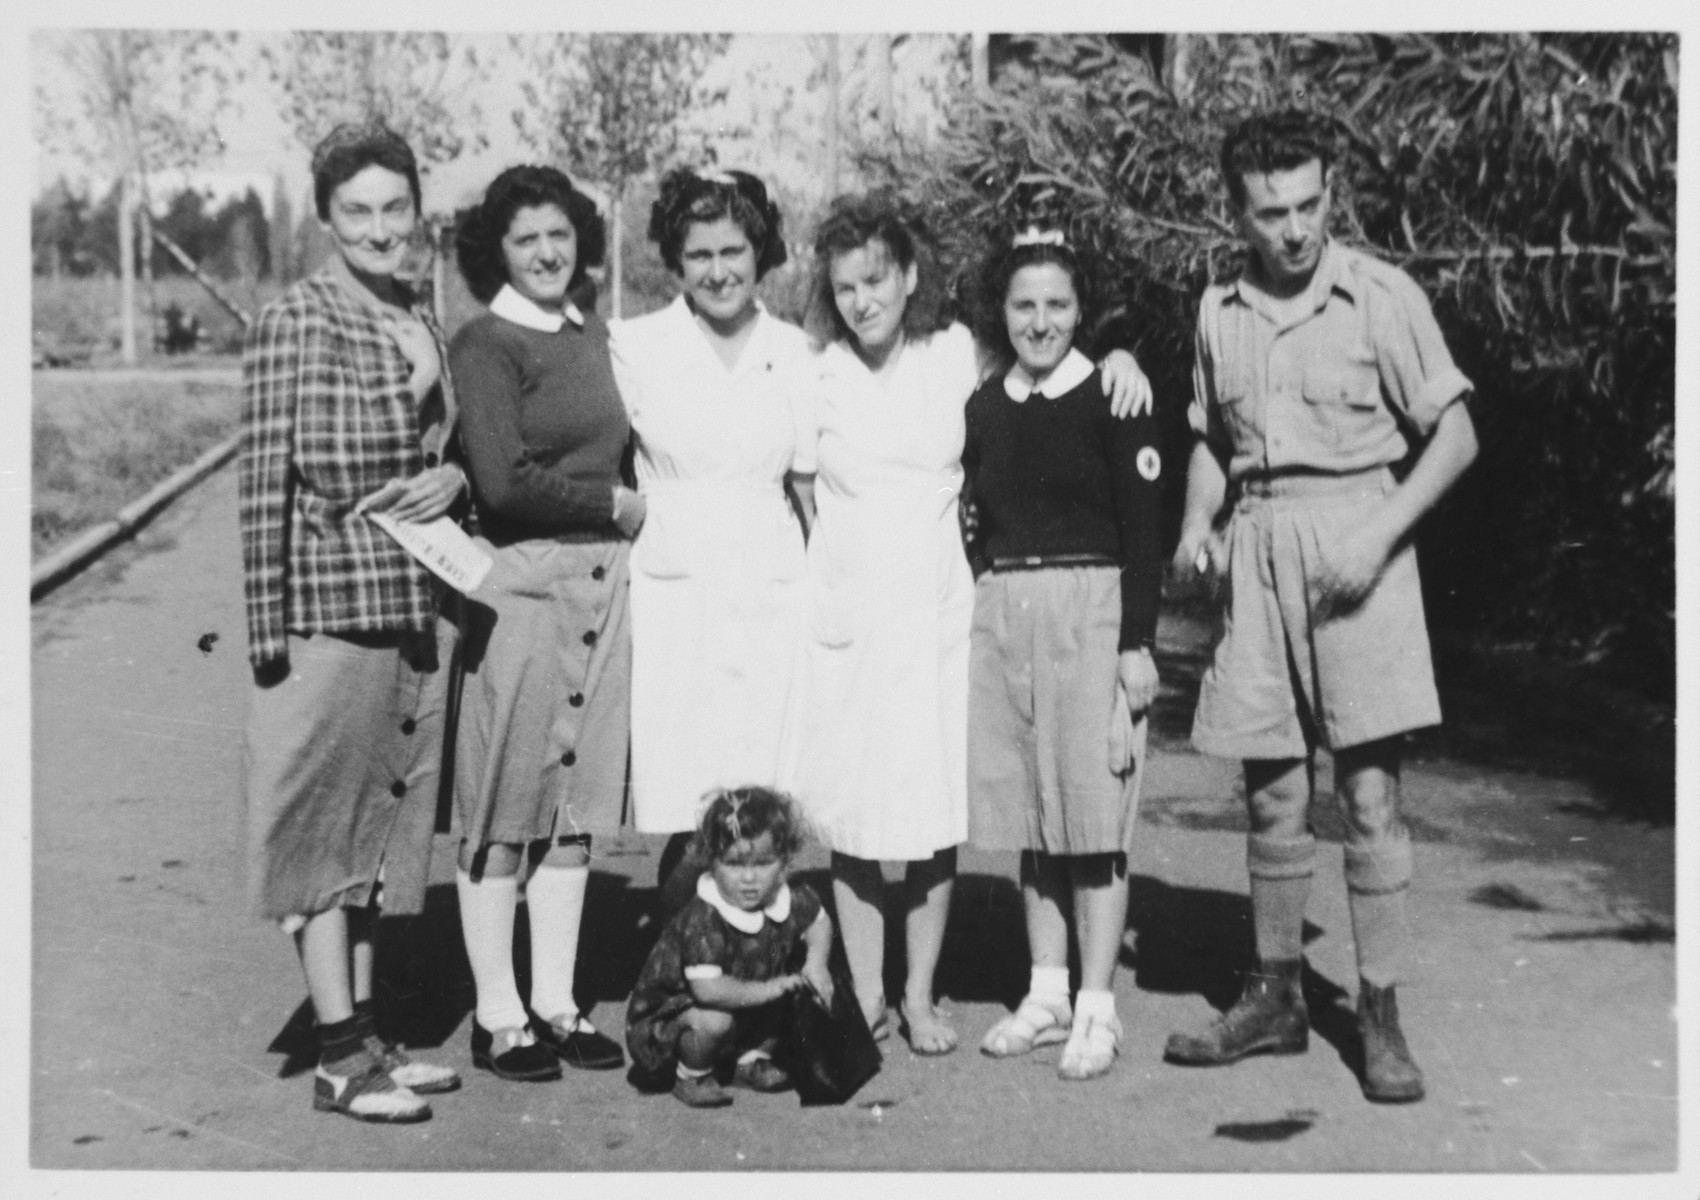 The medical staff of the Cinecitta displaced persons camp.  Mordko Tenenbaum is on the far right.  Ursula Tenenbaum is third from the right, and their daughter Katia, is squatting in the center.